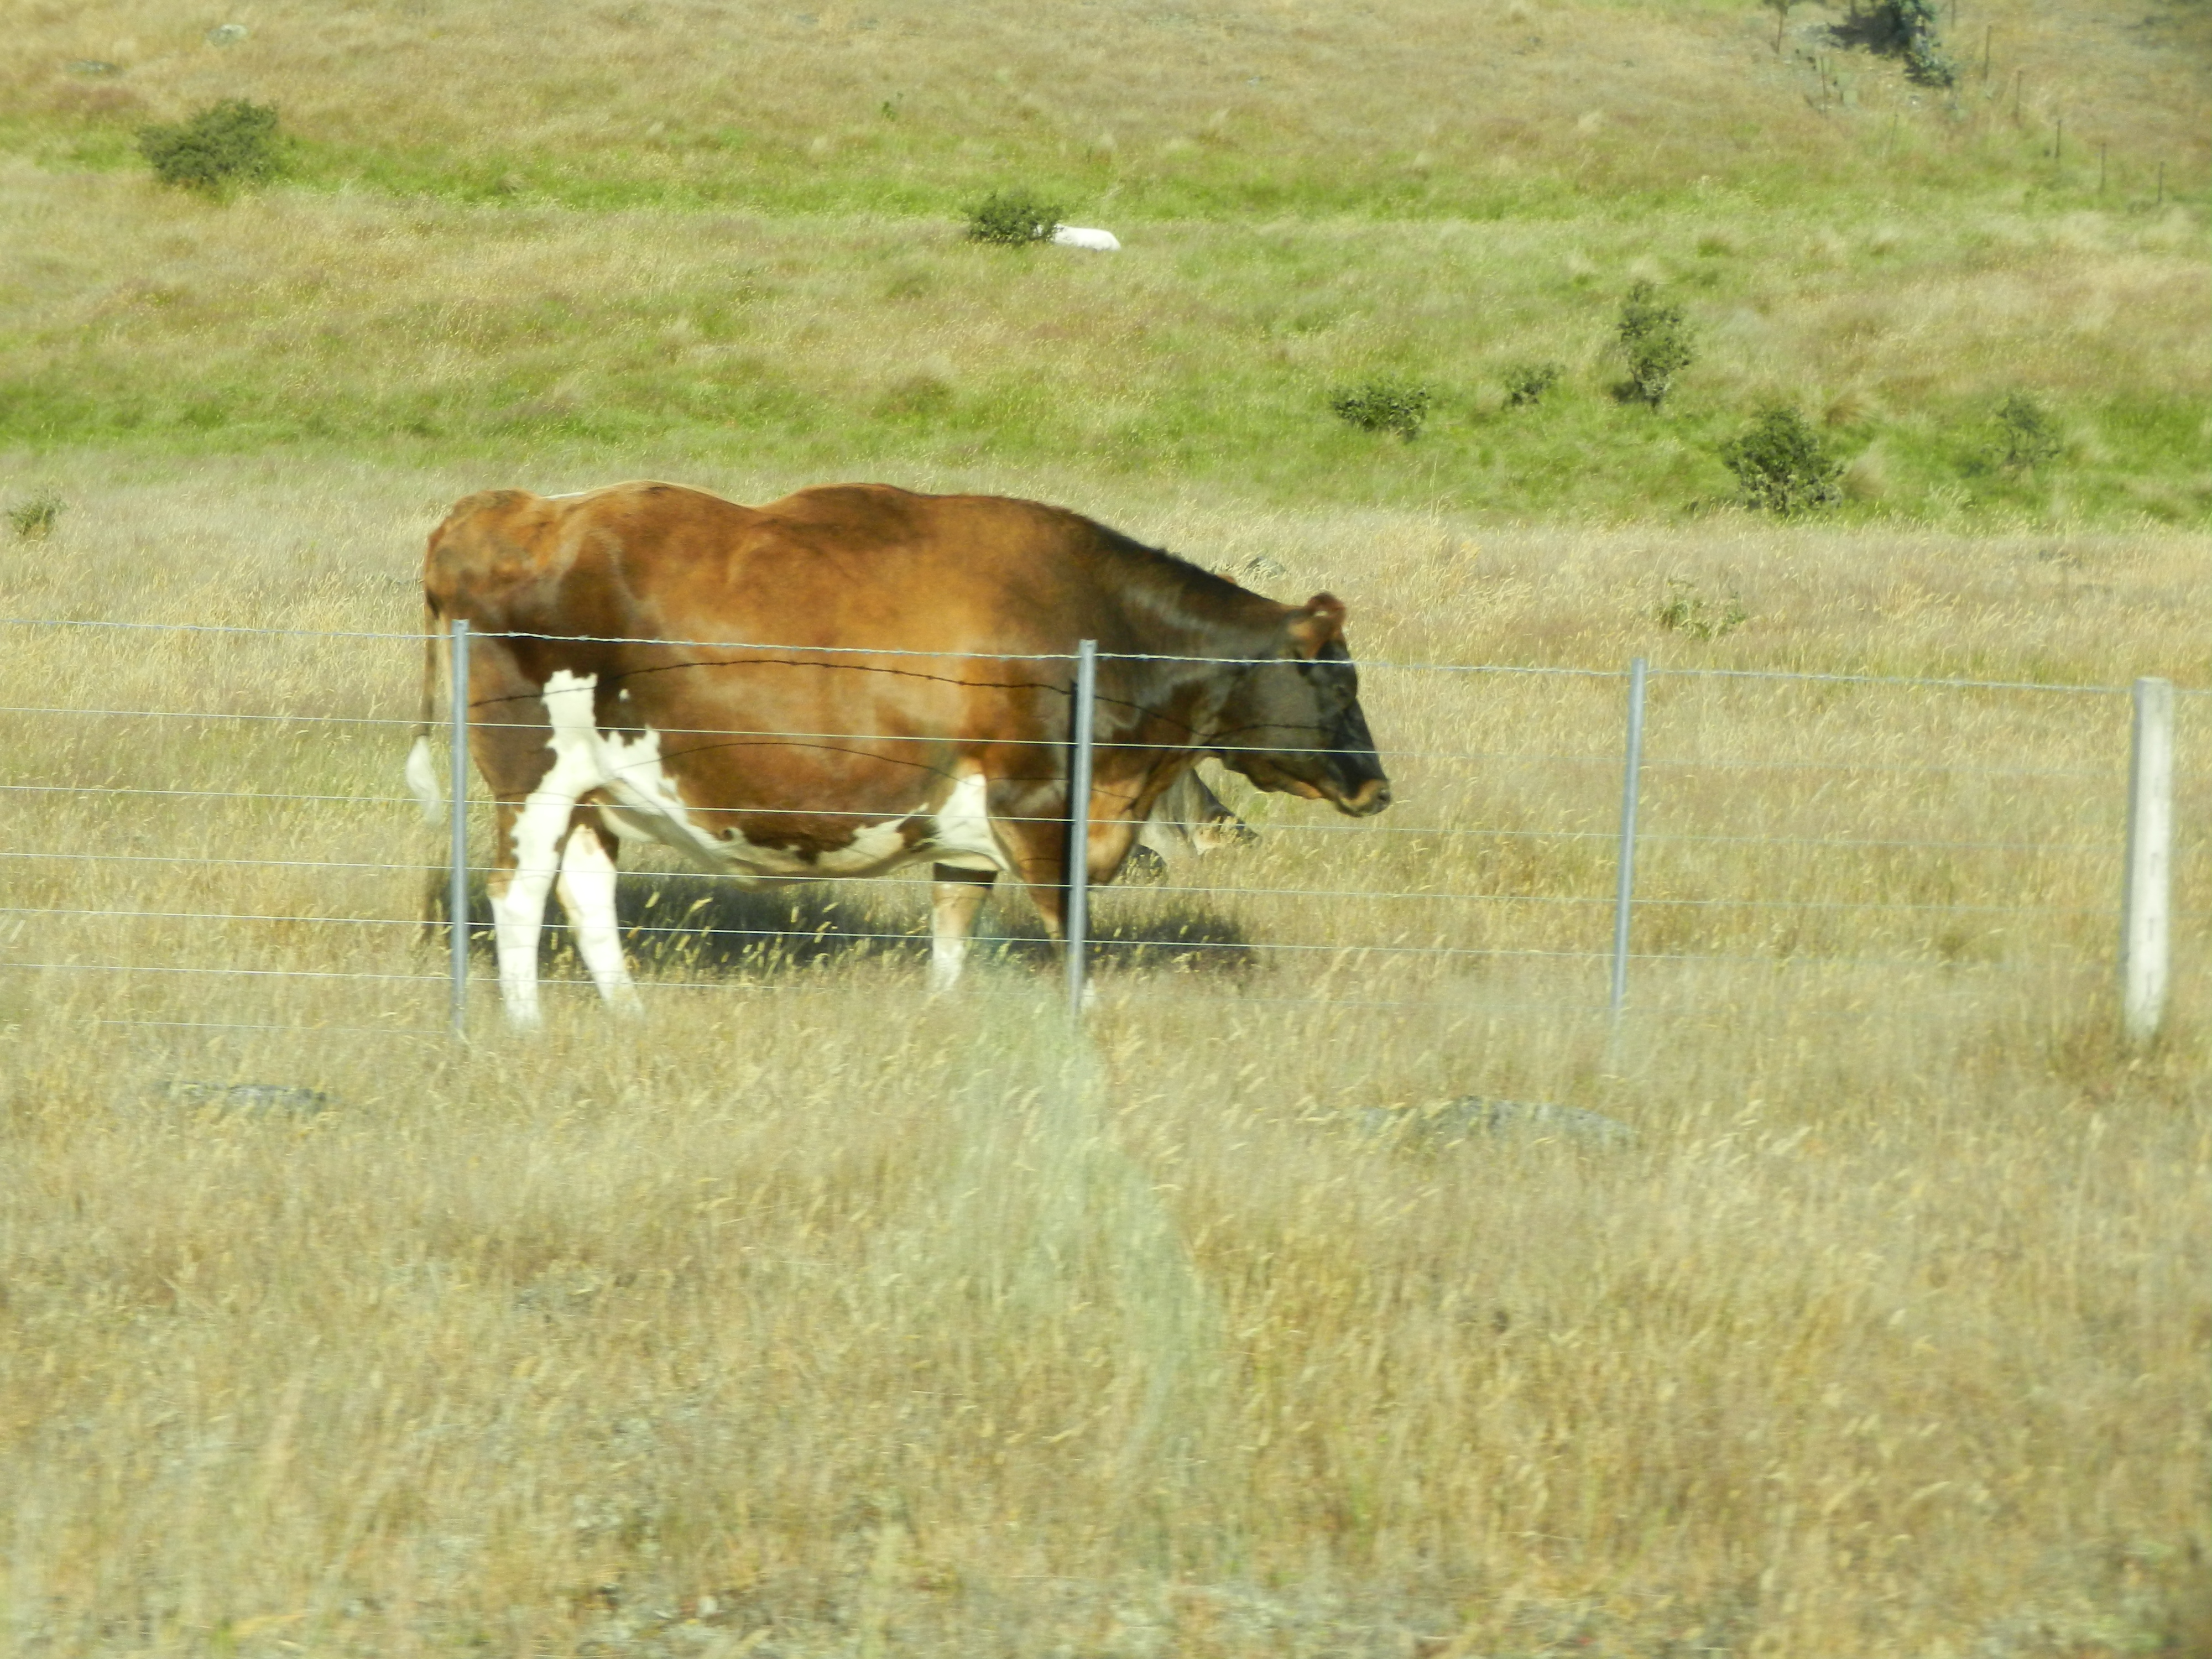 Large brown and white cow standing in a pasture.